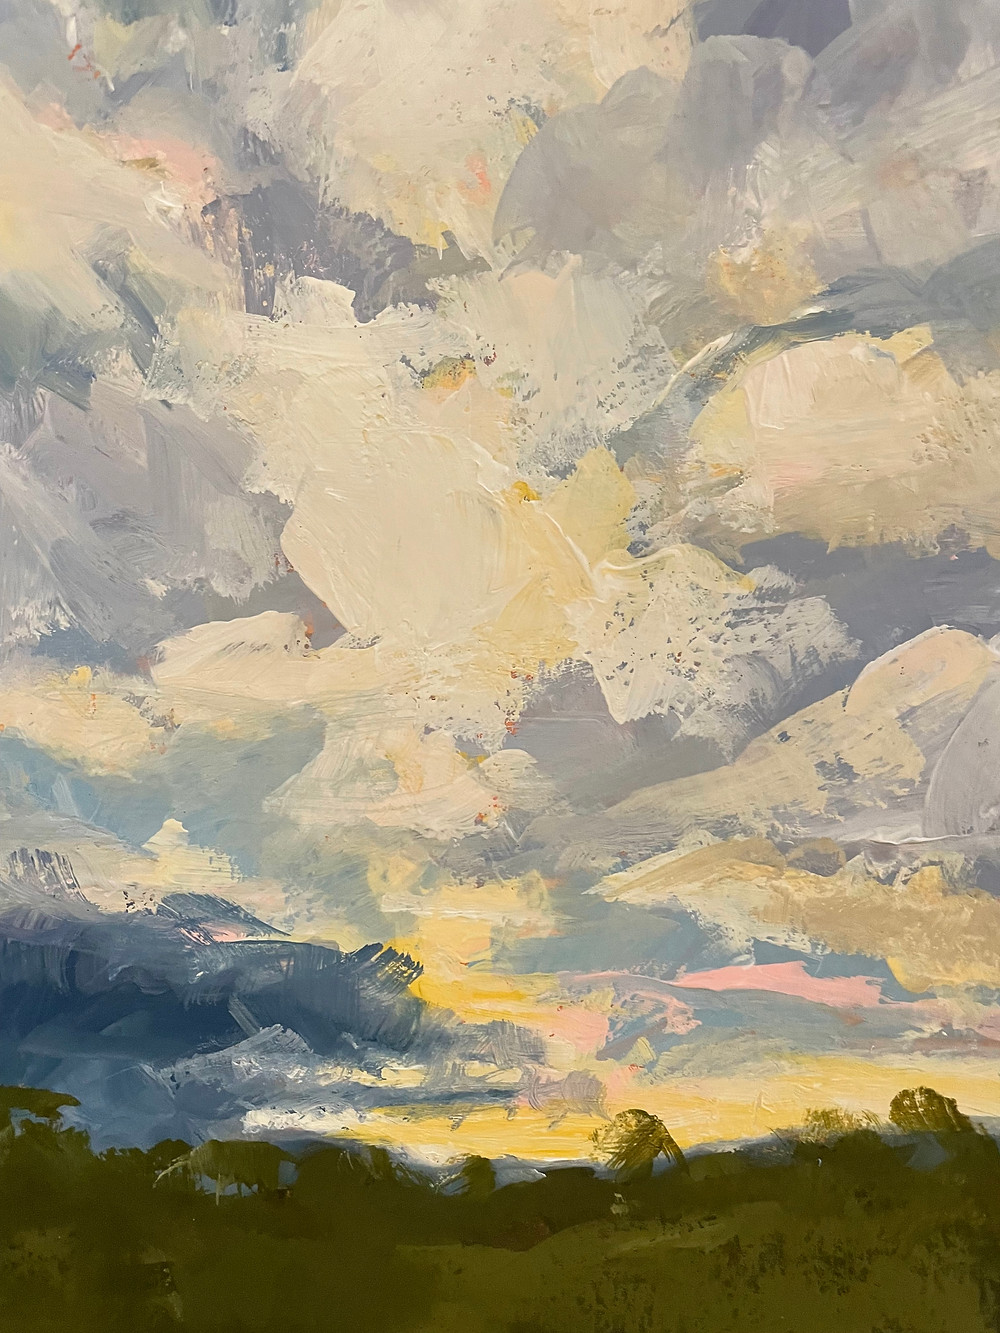 Painterly clouds in a sunset landscape using gouache paint